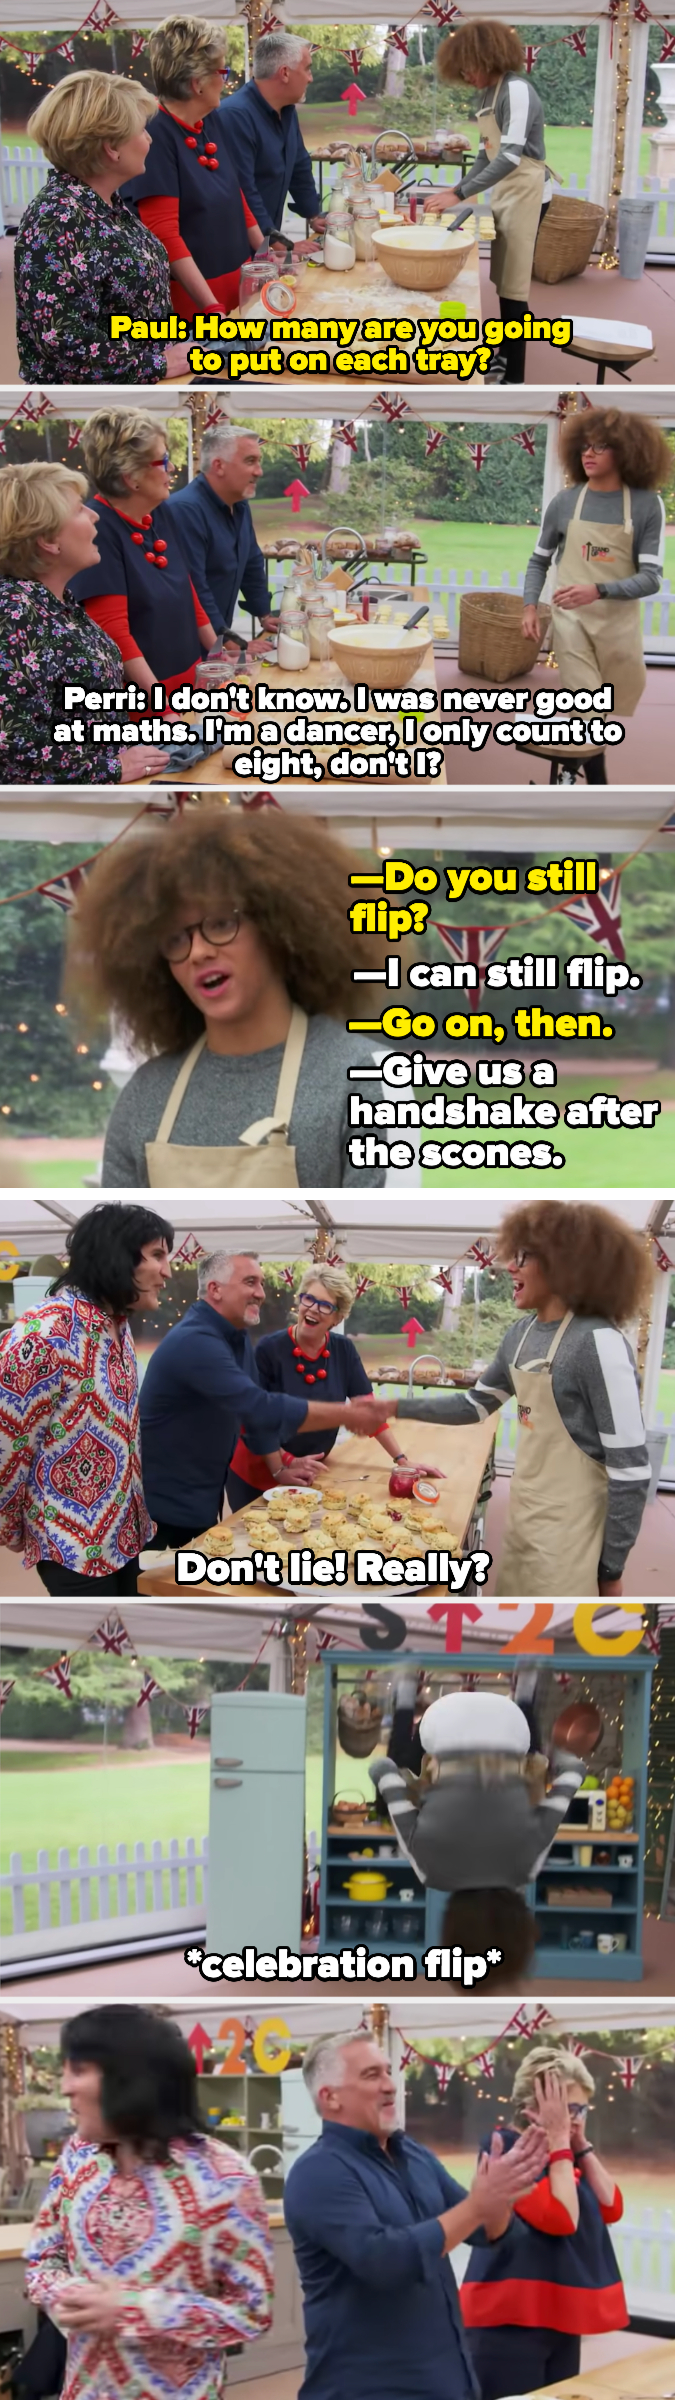 Perri gets a handshake for scones and flips for Paul